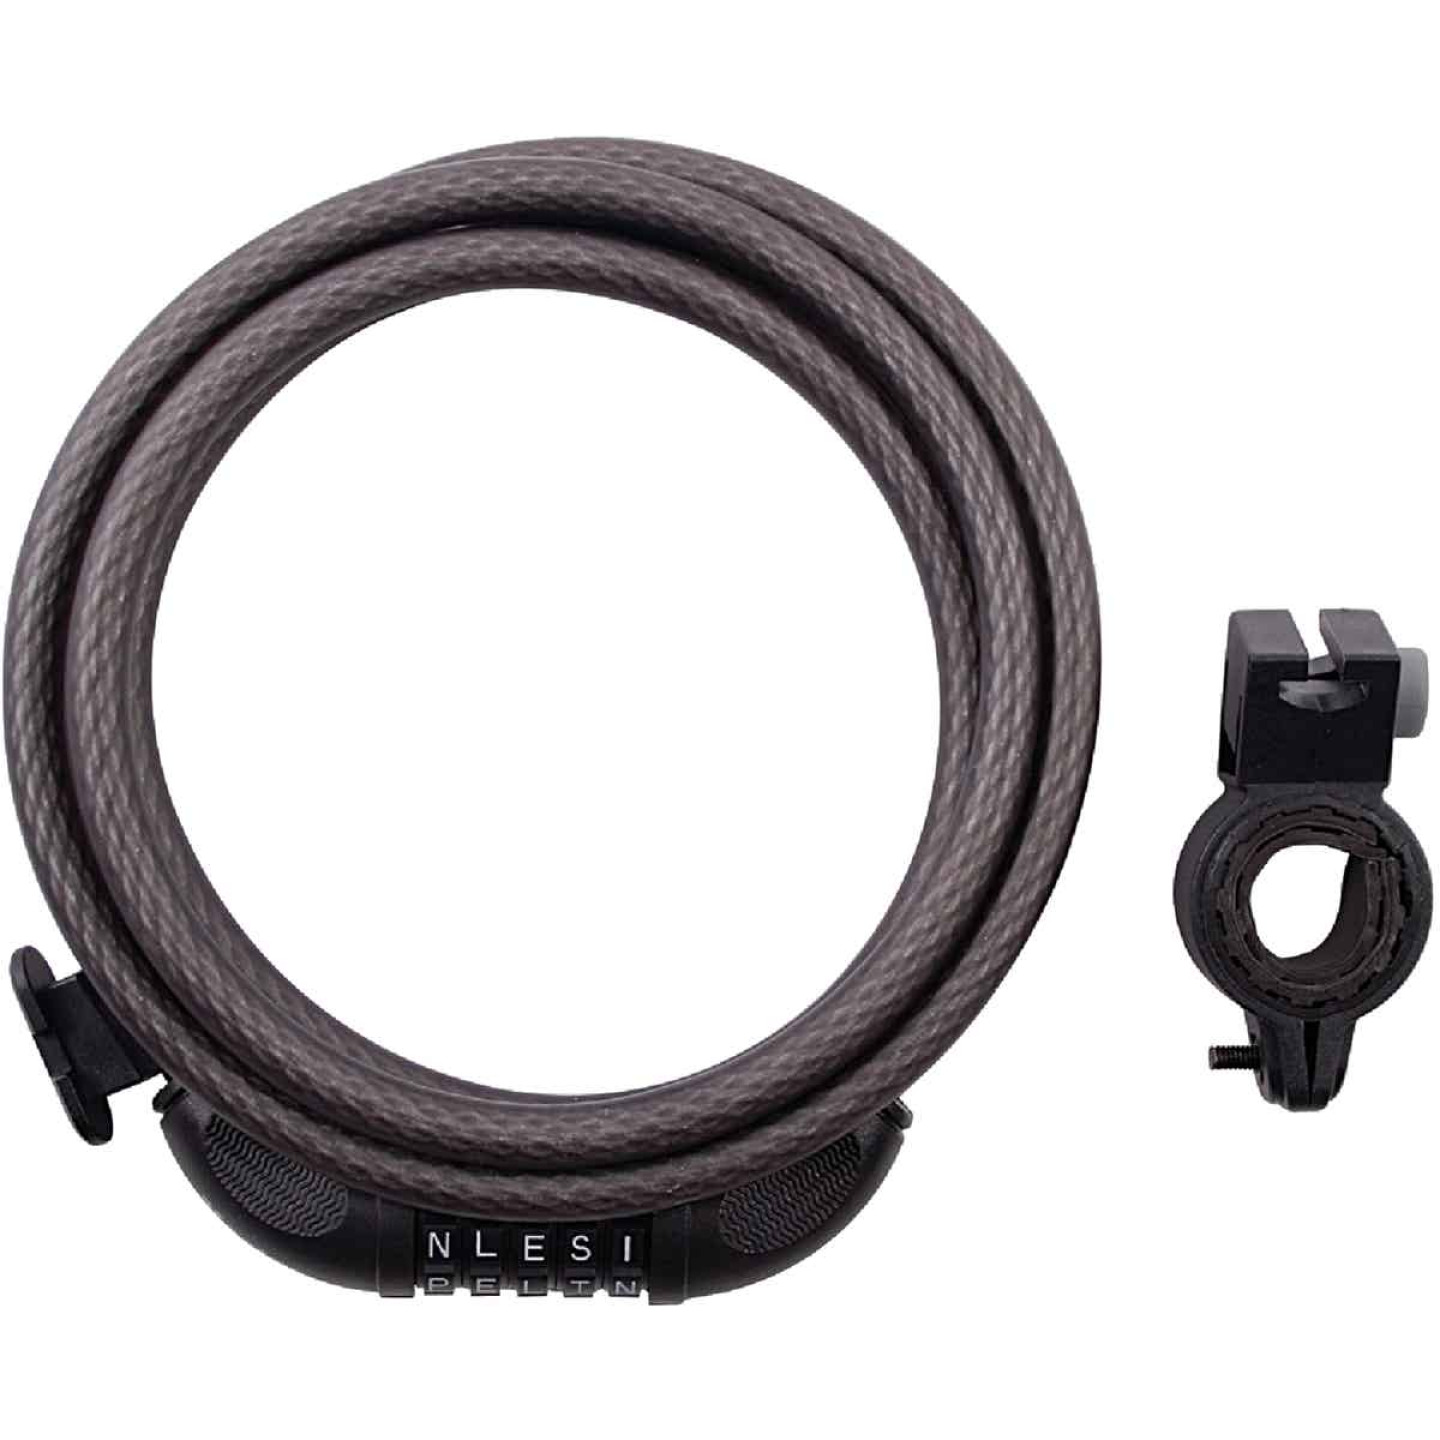 Master Lock 6 Ft. Cable Bicycle Lock Image 1